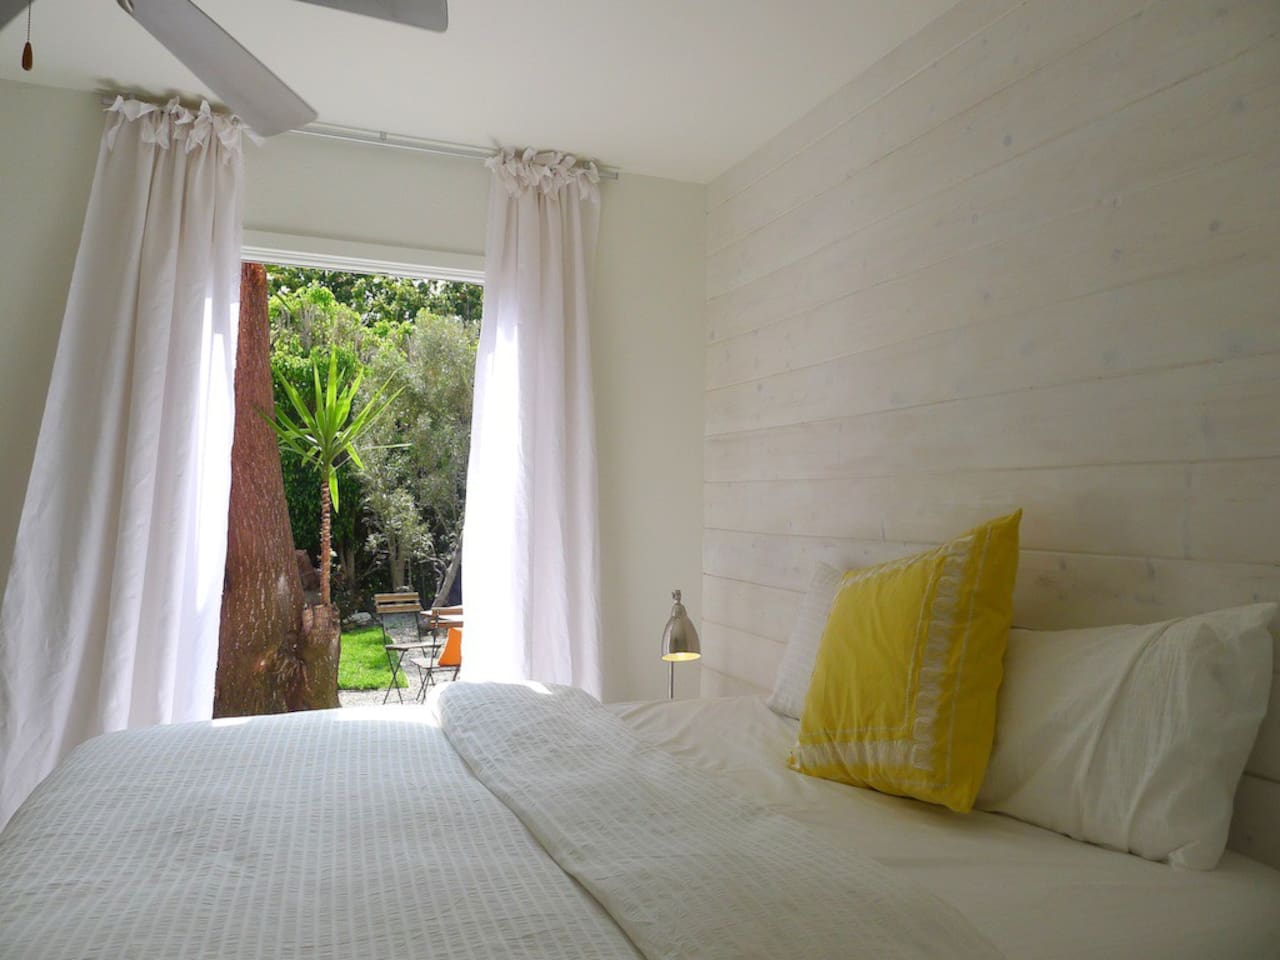 Reclaimed wood headboard wall and french doors lead to private front garden with zen fountain